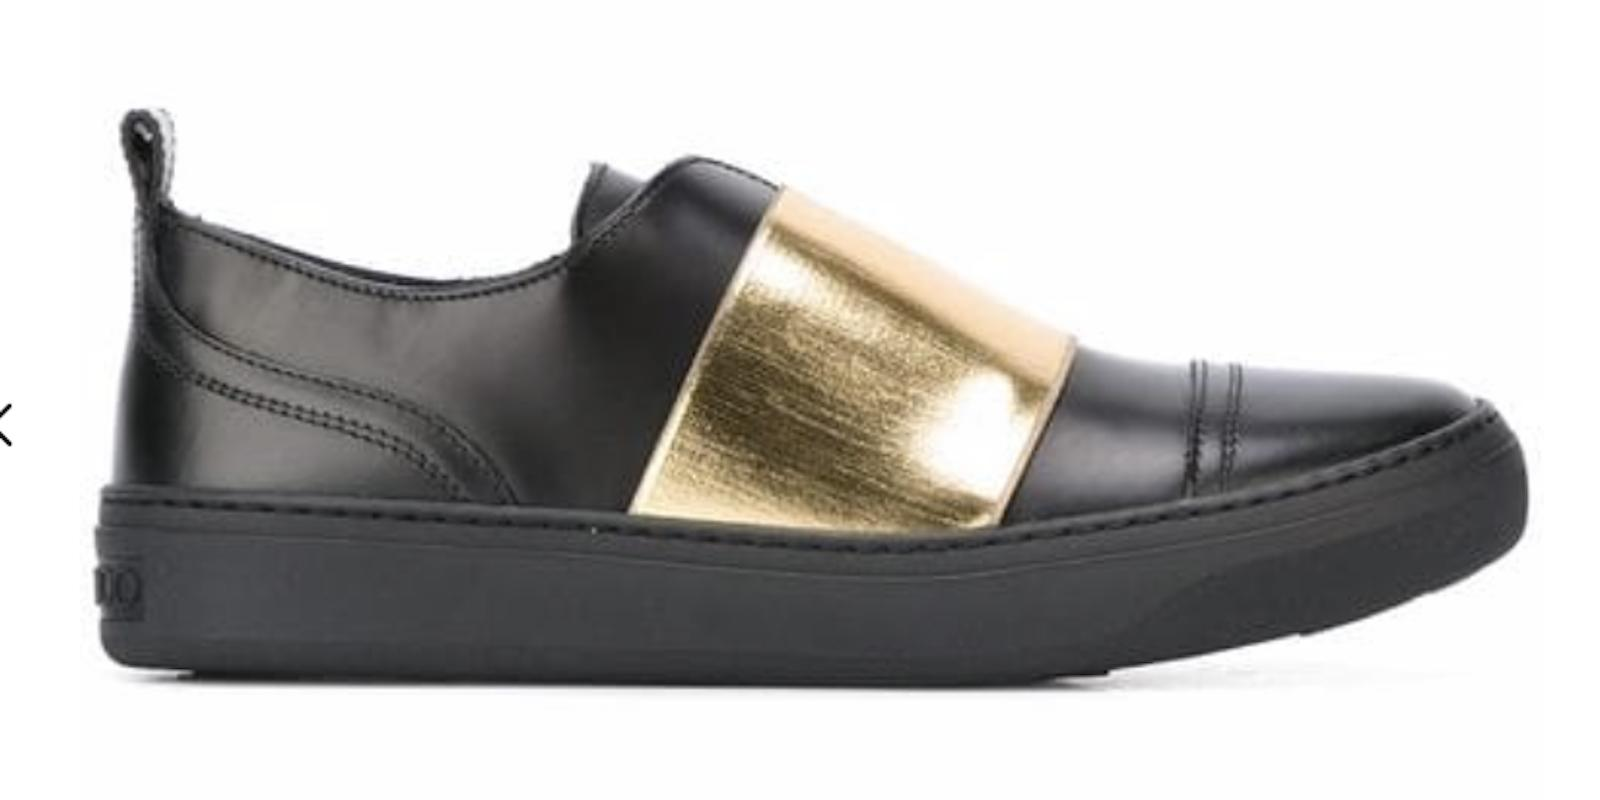 Jimmy Choo Black New Boston Sneakers Black/Gold Sneakers Size EU 36.5 (Approx. US 6.5) Regular (M, B)